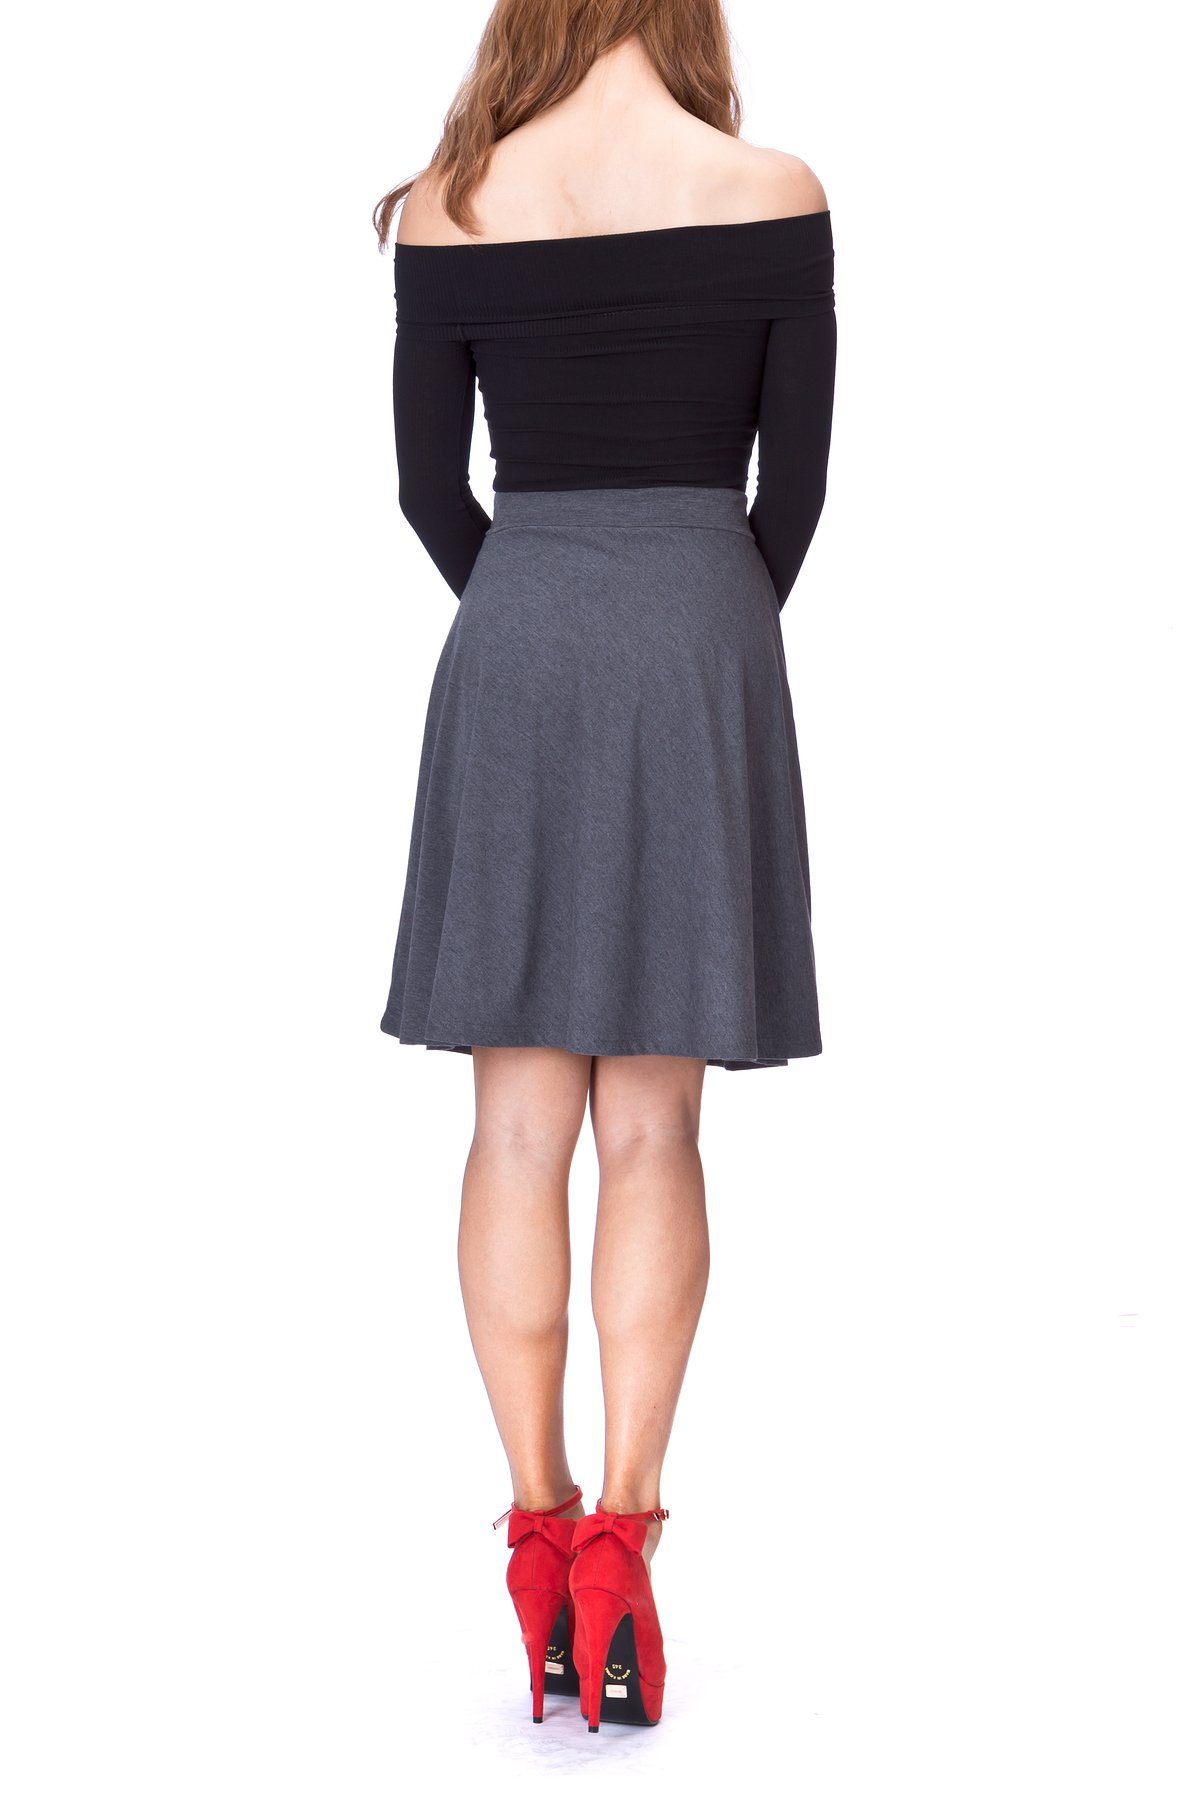 Simple Stretch A line Flared Knee Length Skirt Charcoal 4